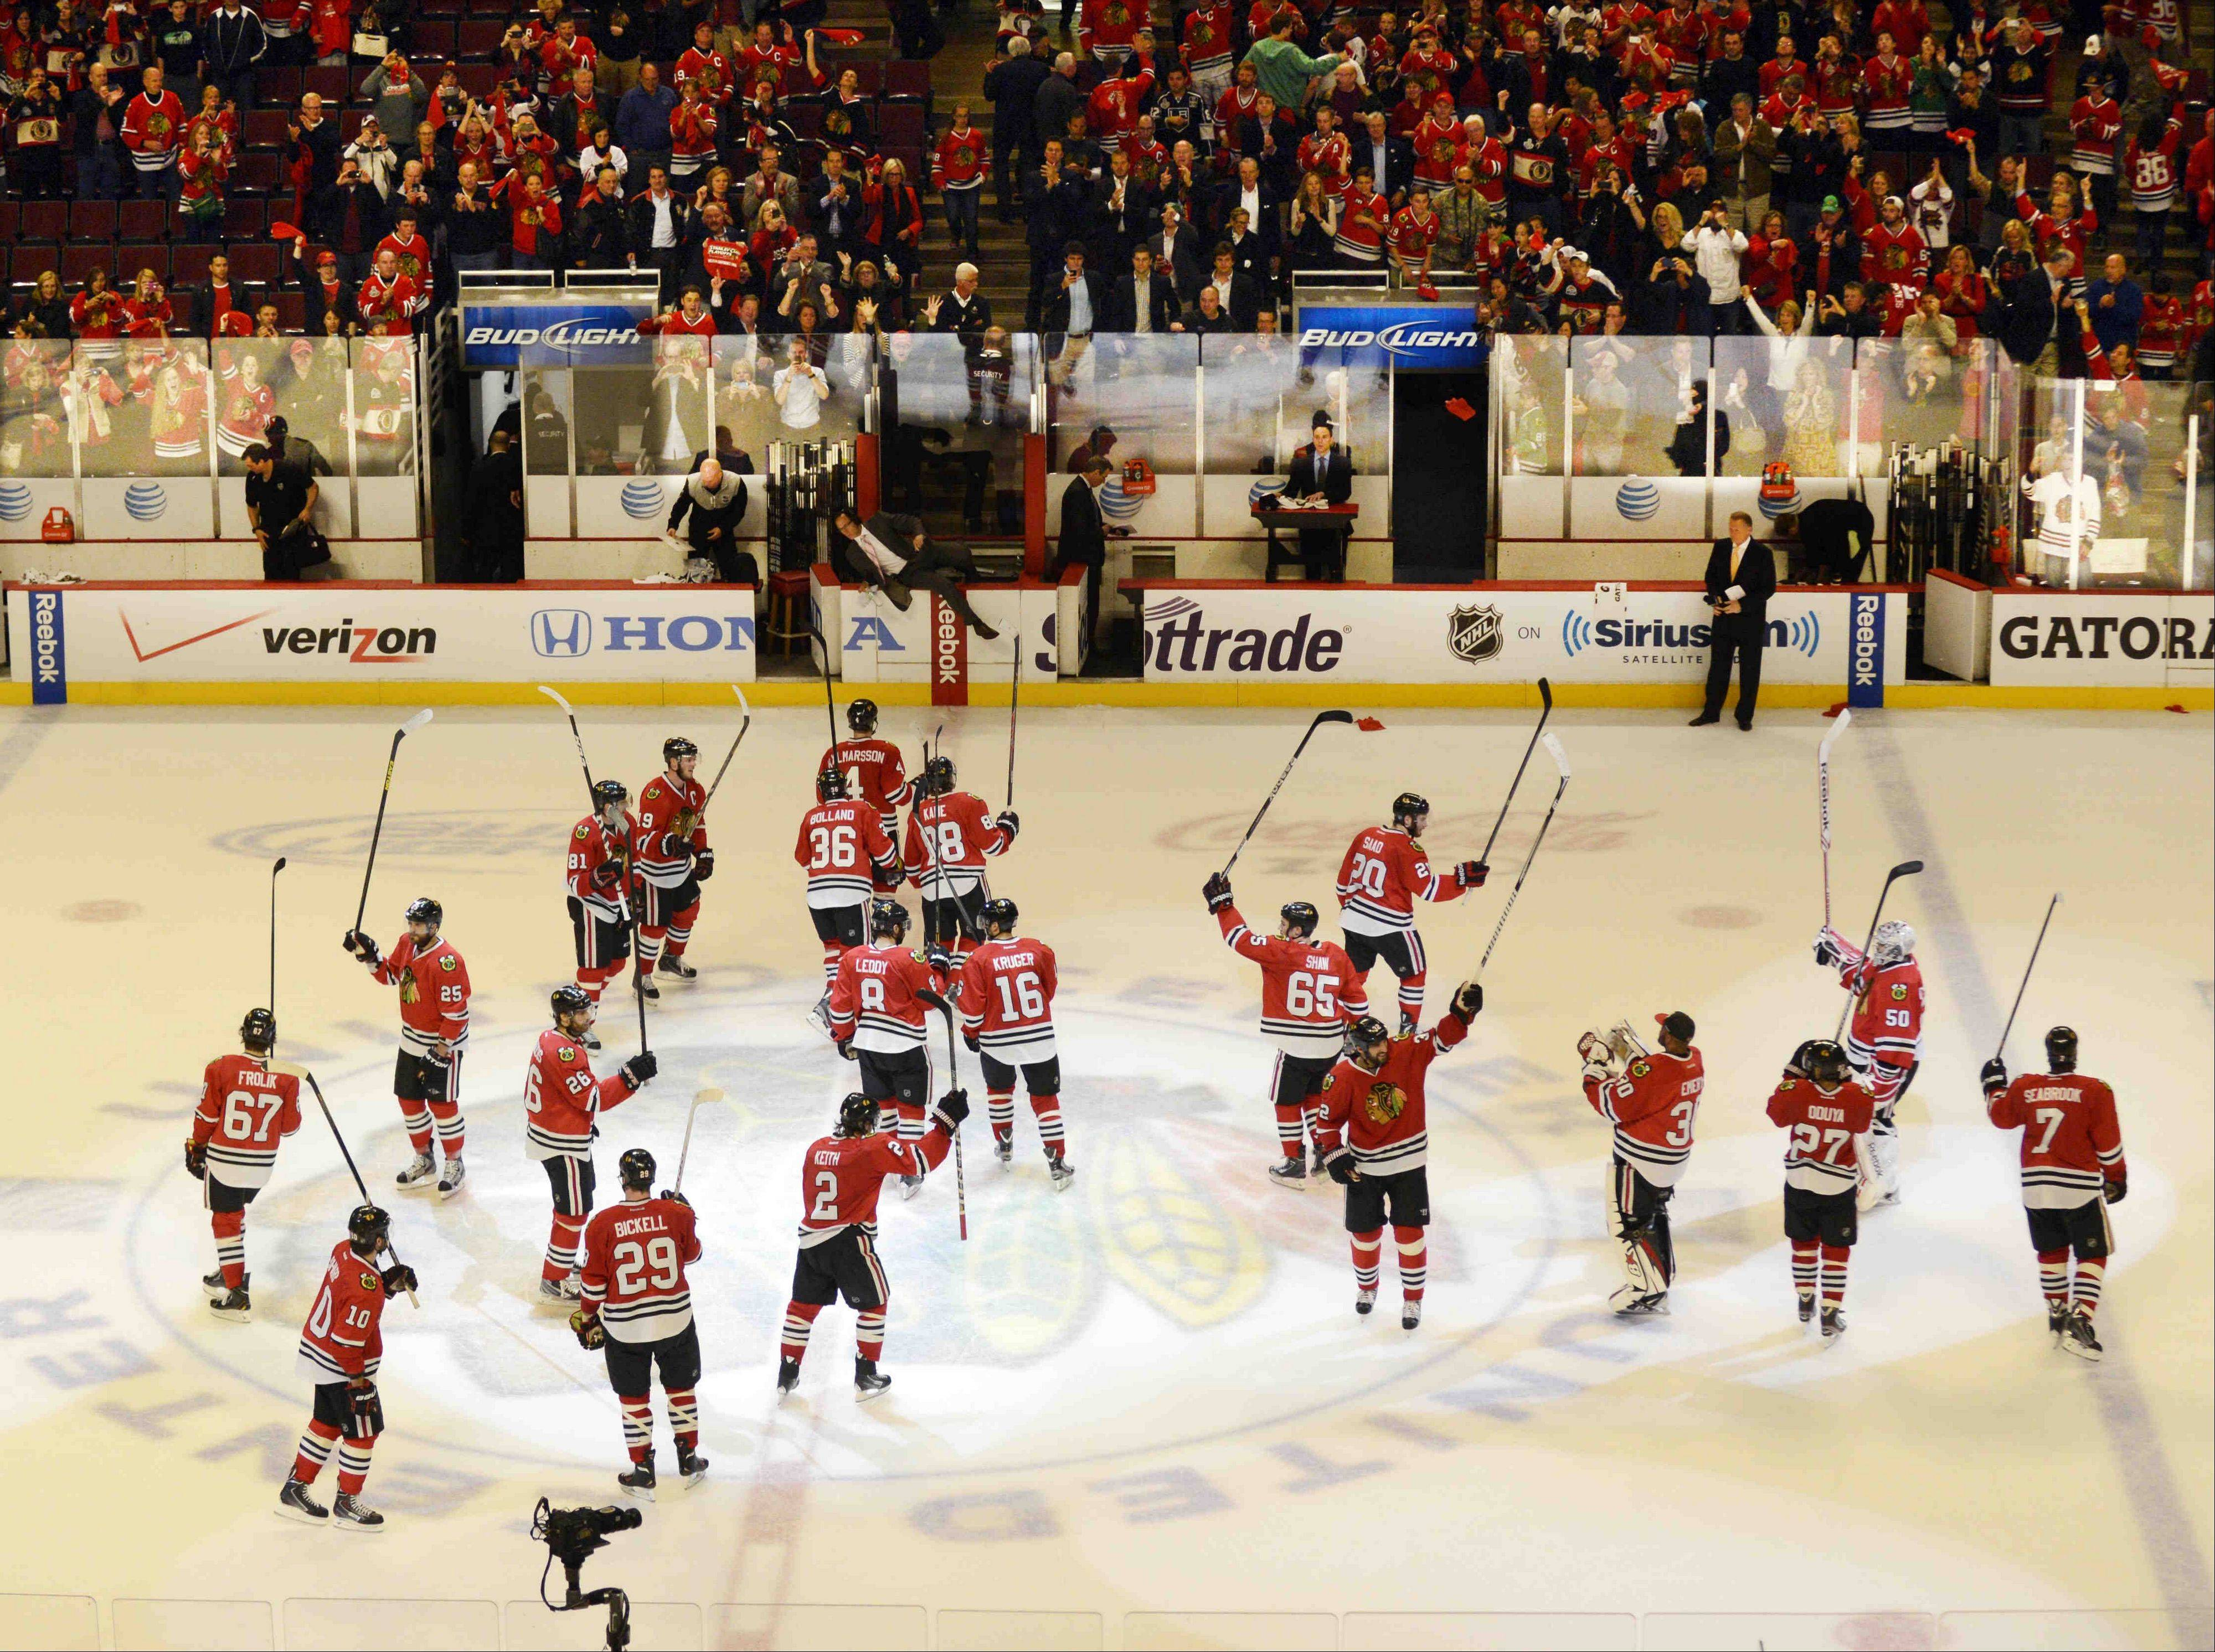 The Chicago Blackhawks raise their sticks in victory after beating the Los Angeles Kings during game 2 of the NHL Western Conference finals at the United Center Sunday night in Chicago.